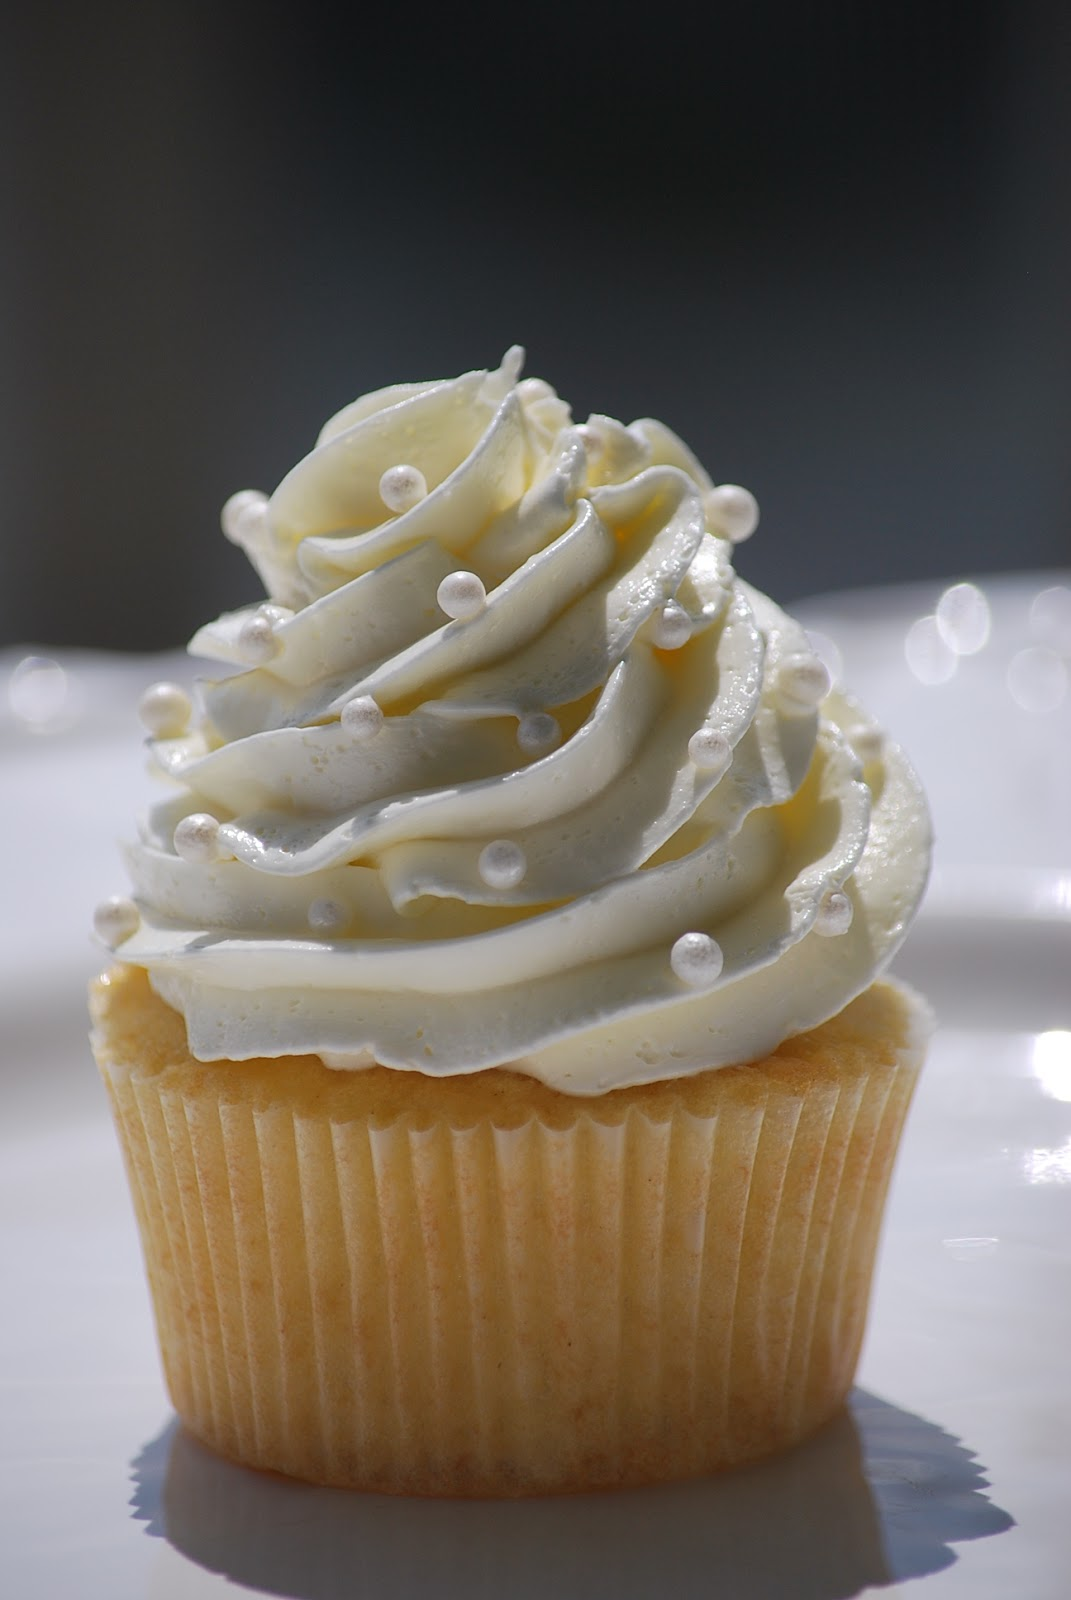 My story in recipes: Vanilla Cupcakes